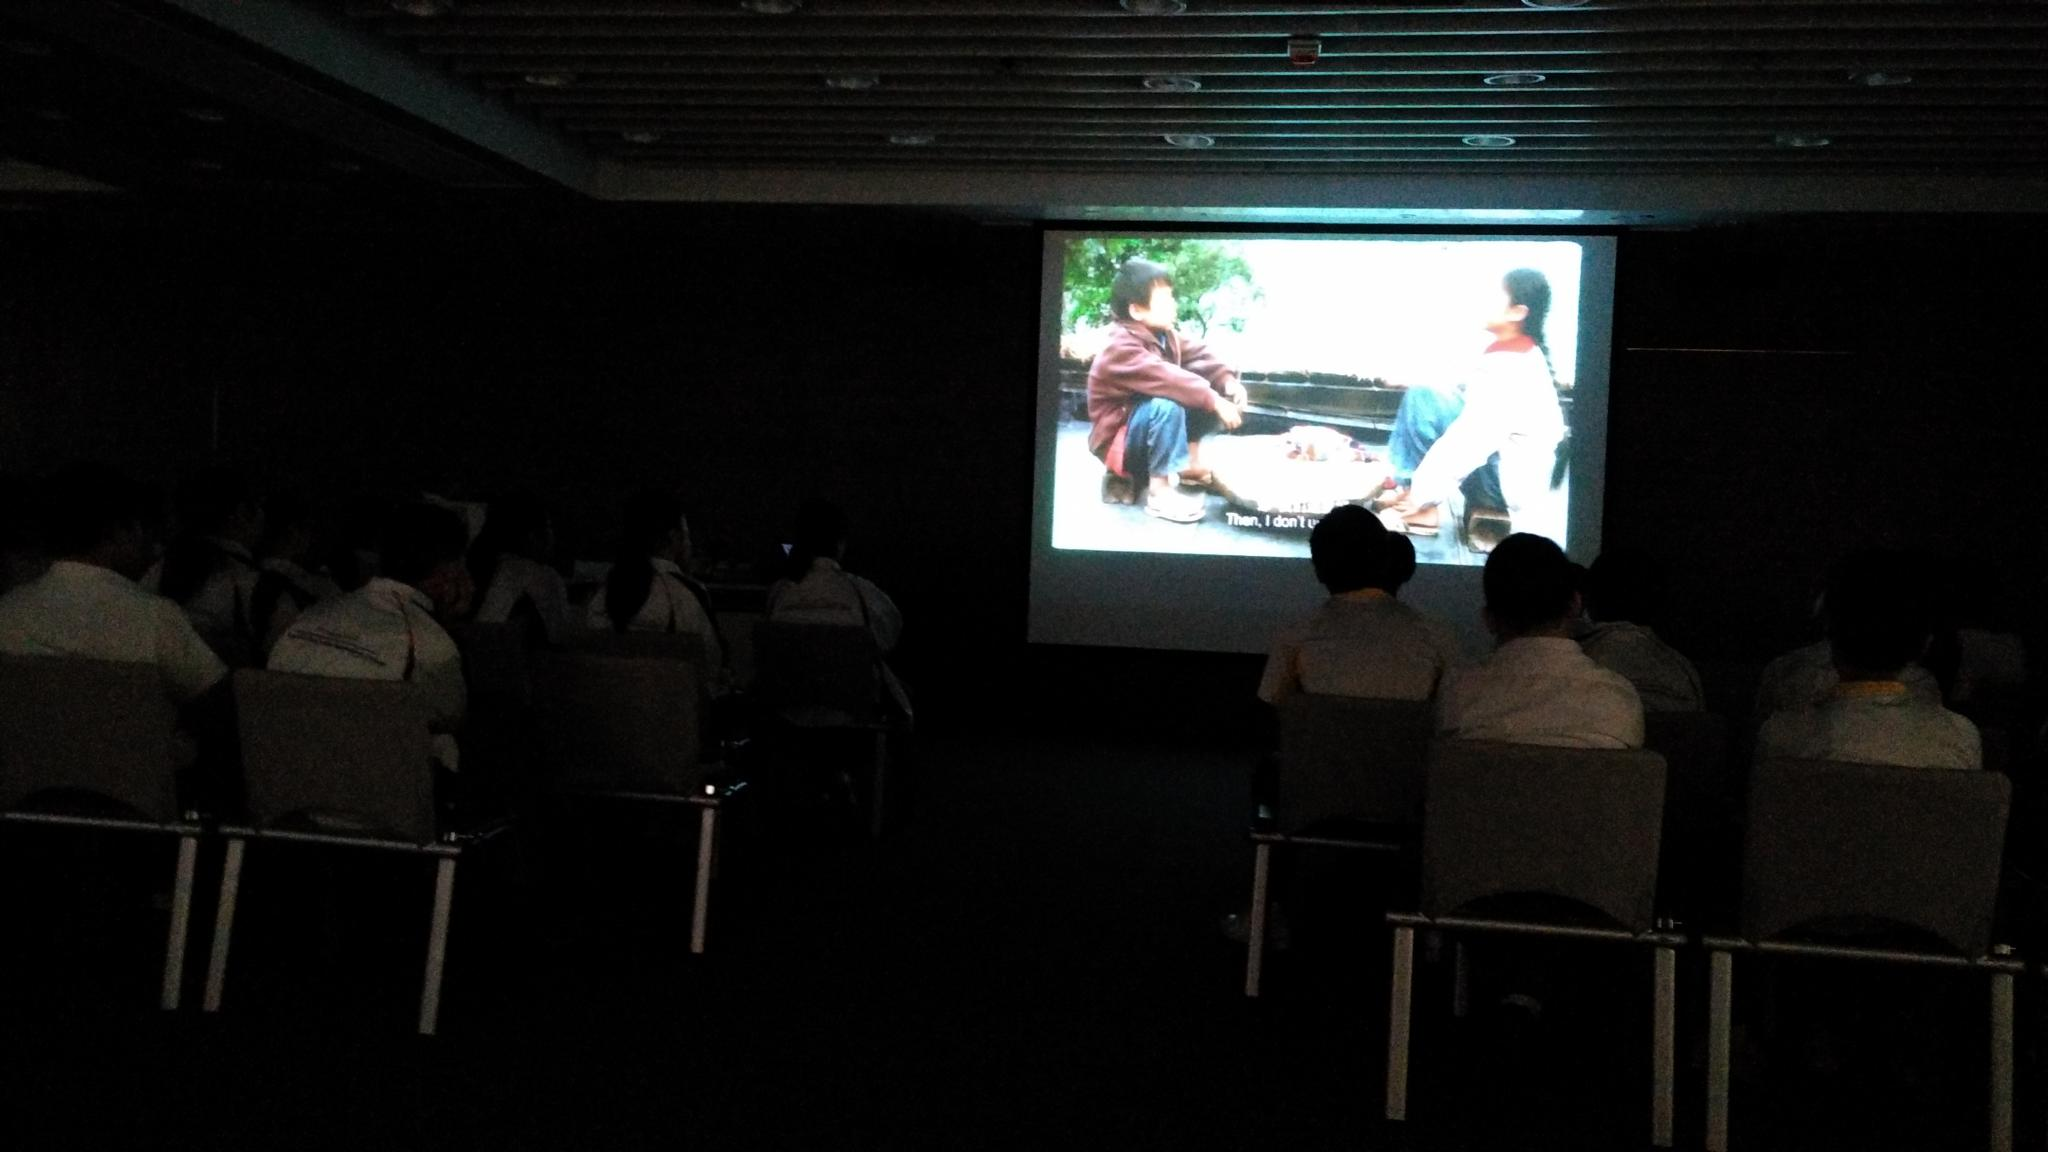 Students were watching a film which was about the study life of a student in China.